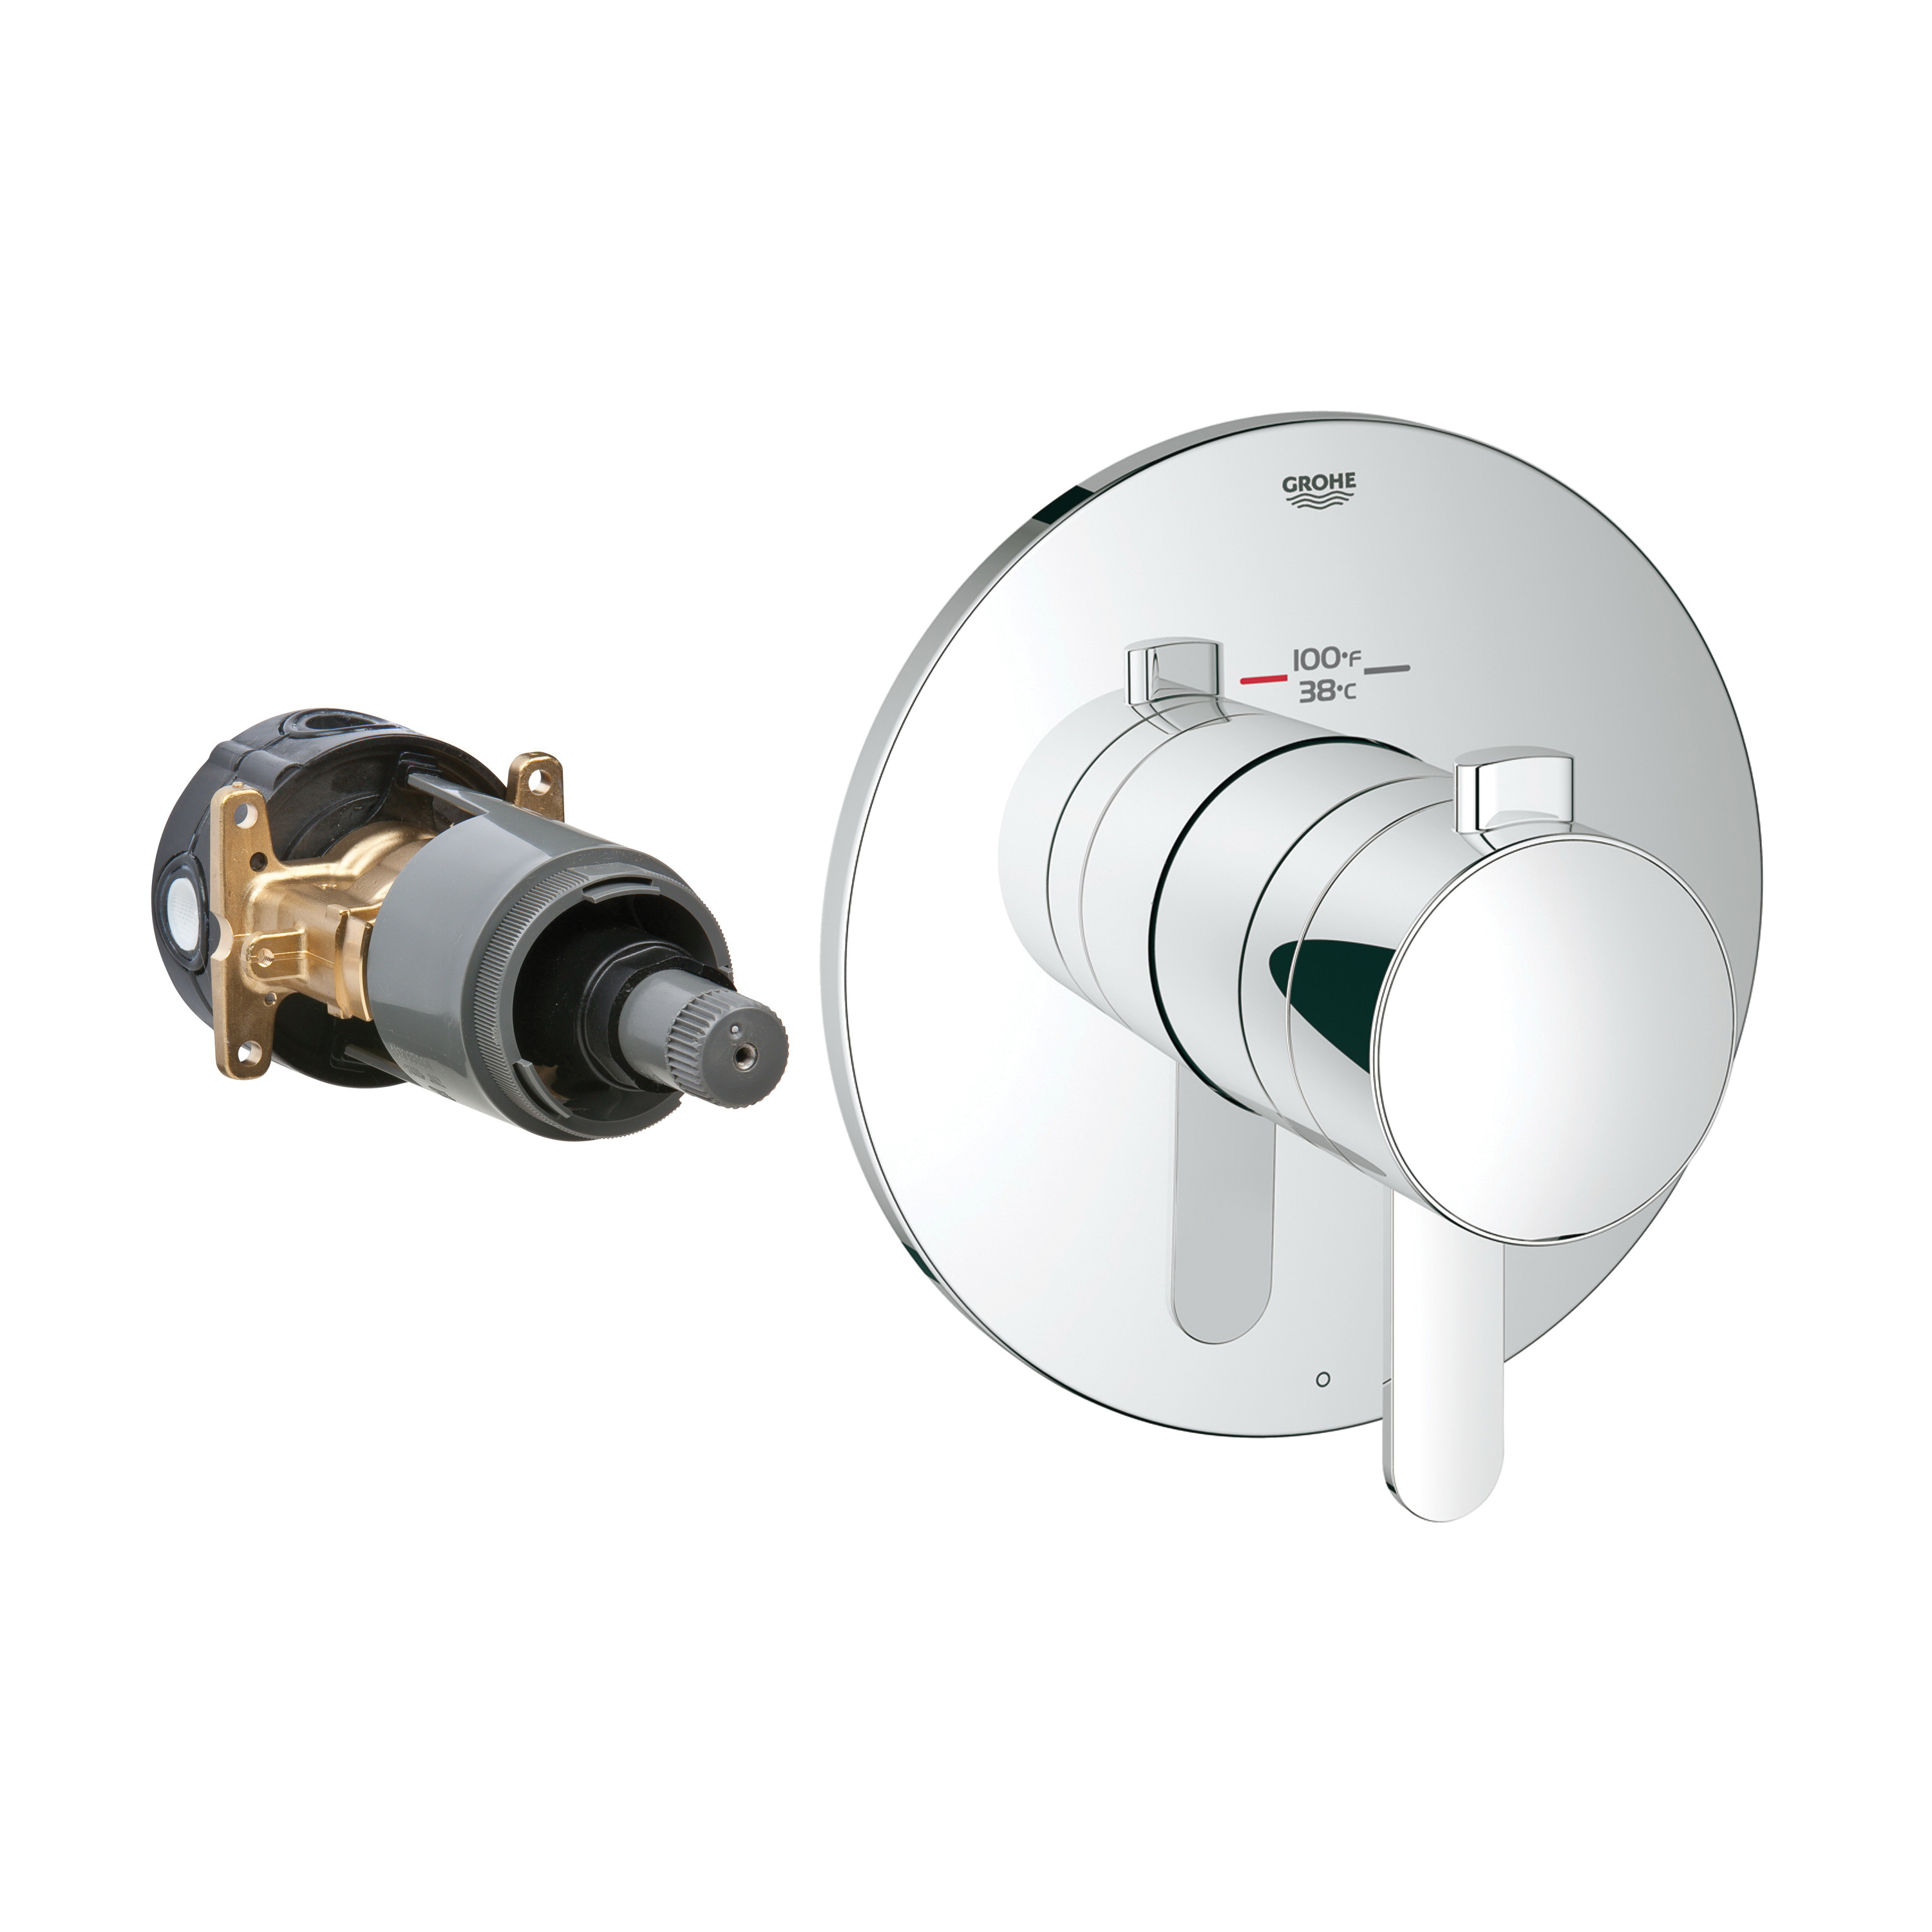 GROHE 19869000 Europlus® 1-Function Trim, 6.3 gpm Shower, Hand Shower Yes/No: No, Chrome Plated